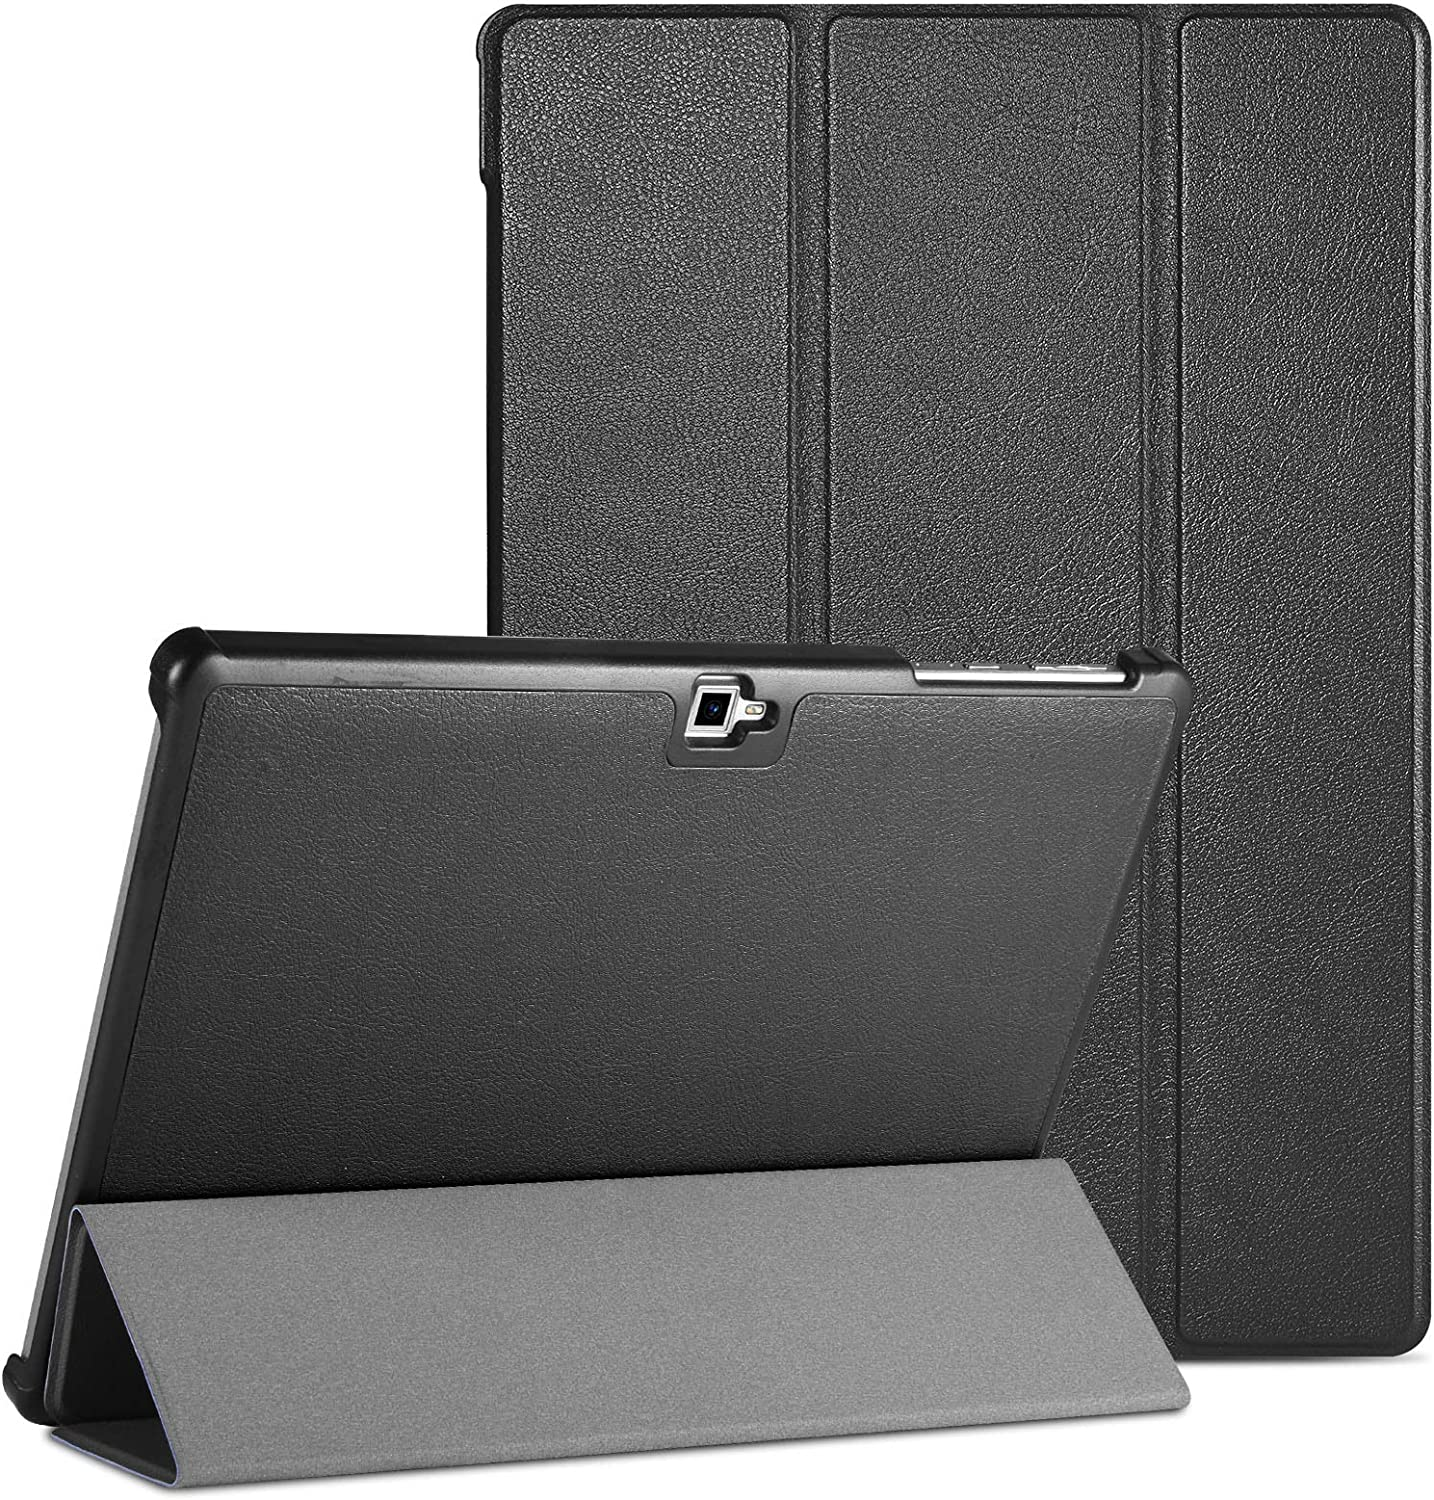 Choice PCduoduo Case Compatible with for Vankyo S30 T Manufacturer direct delivery 10 Inch MatrixPad